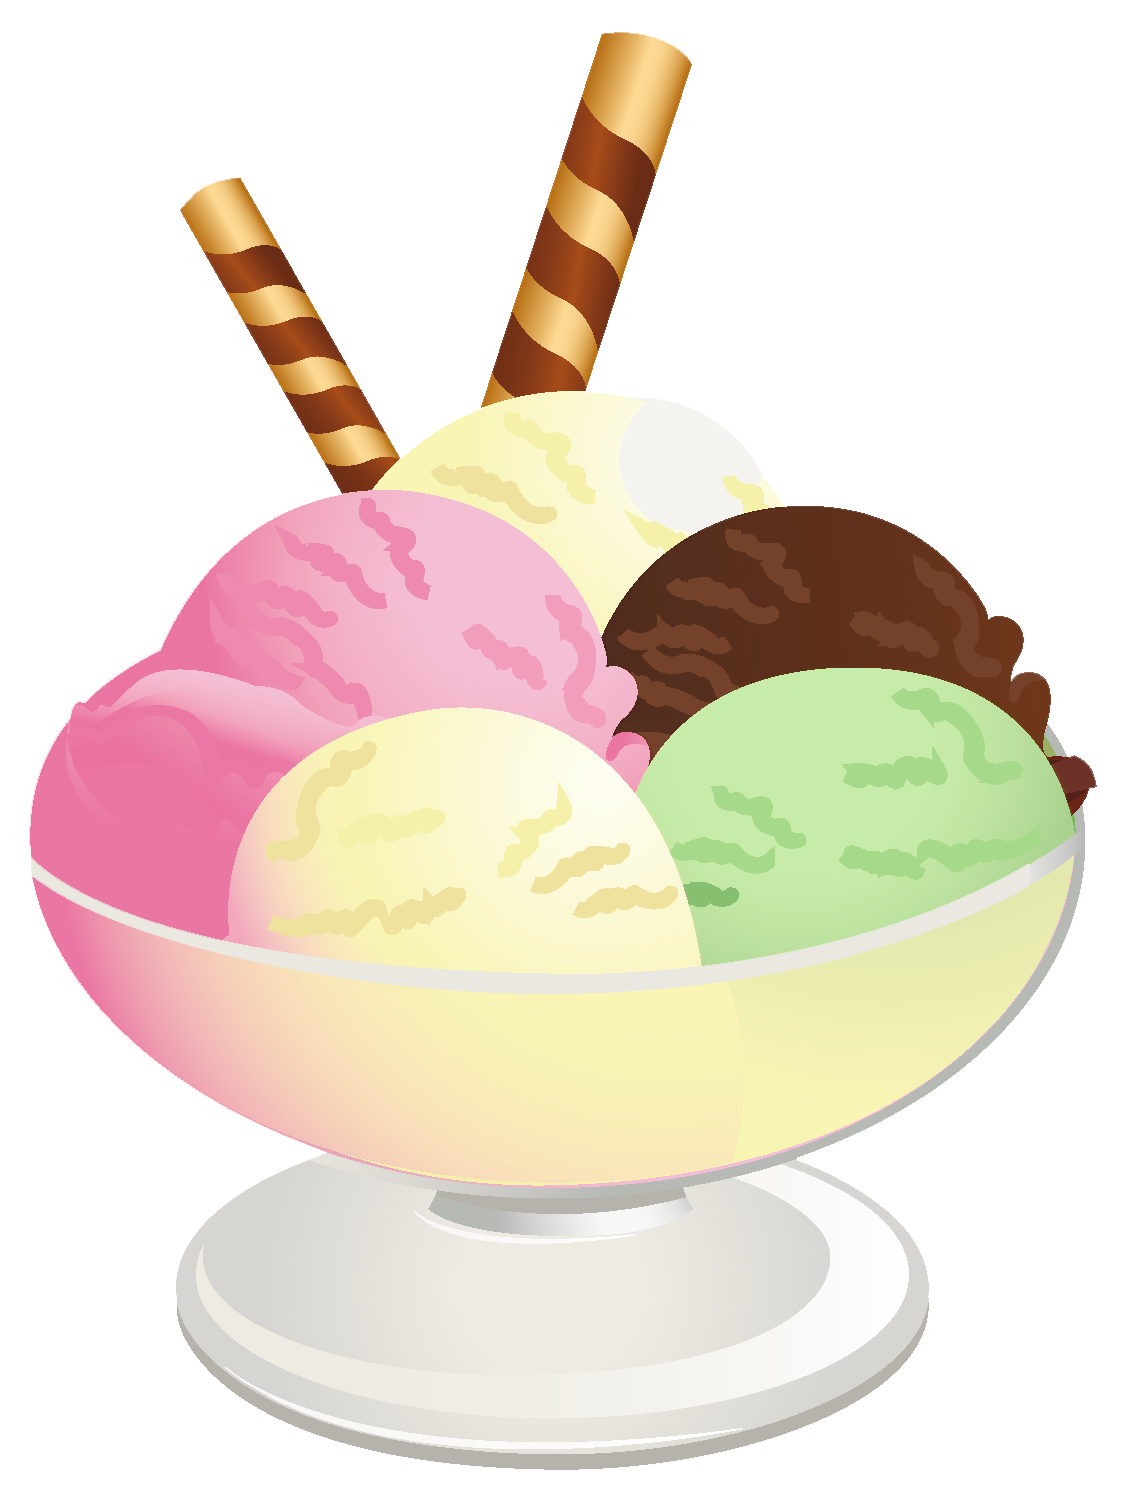 Sweet foods clipart graphic free library Pin by Maria Marshall on Square1Art Ideas | Ice cream, Ice cream ... graphic free library